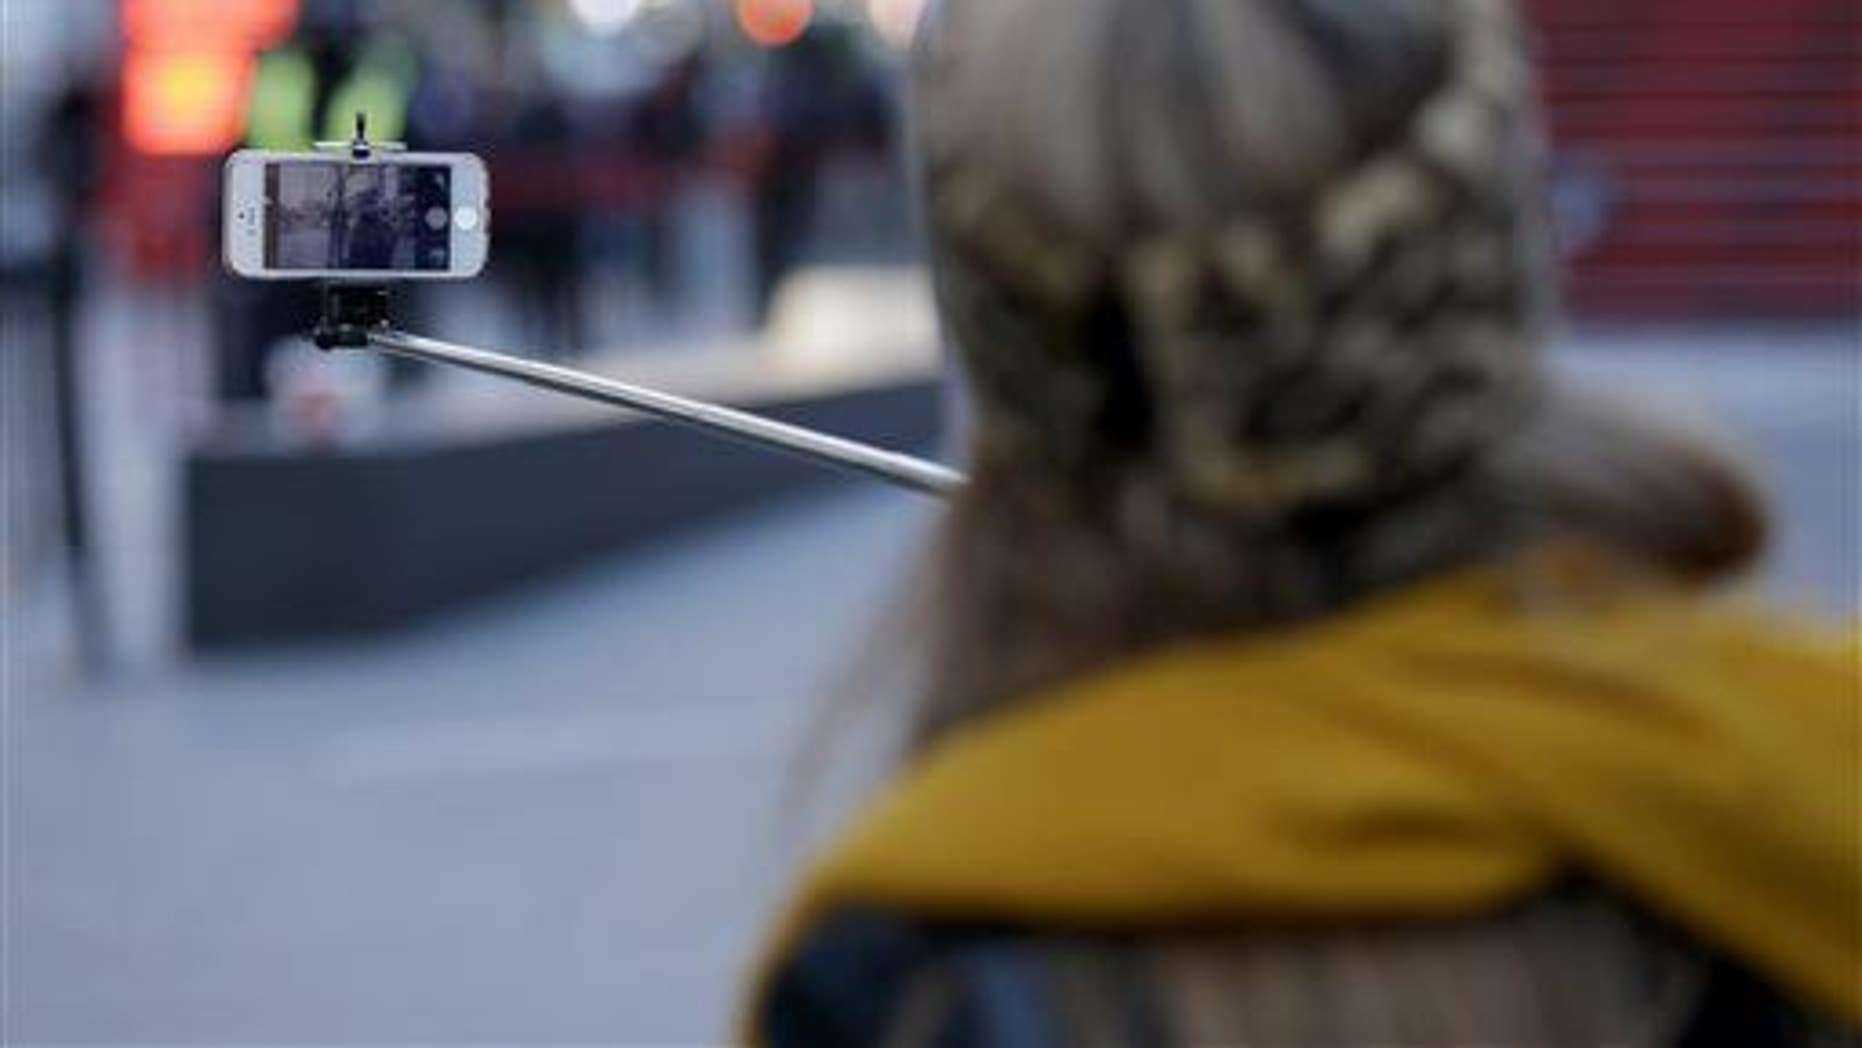 Sandy Johal uses a selfie stick to take a picture of herself in Times Square in New York, Jan. 8, 2015.